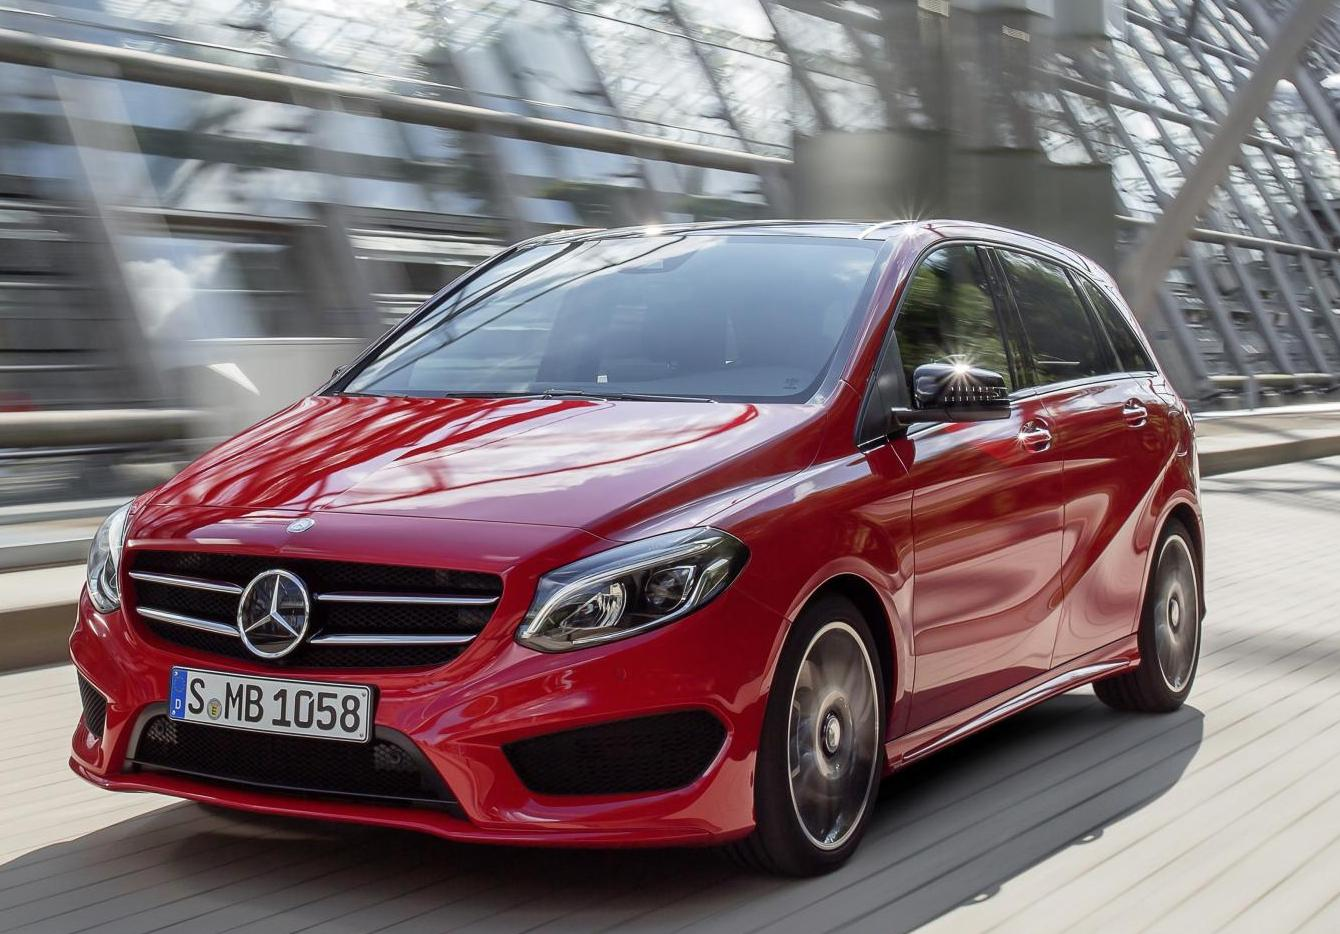 2015 mercedes benz b class facelift price features specs. Black Bedroom Furniture Sets. Home Design Ideas